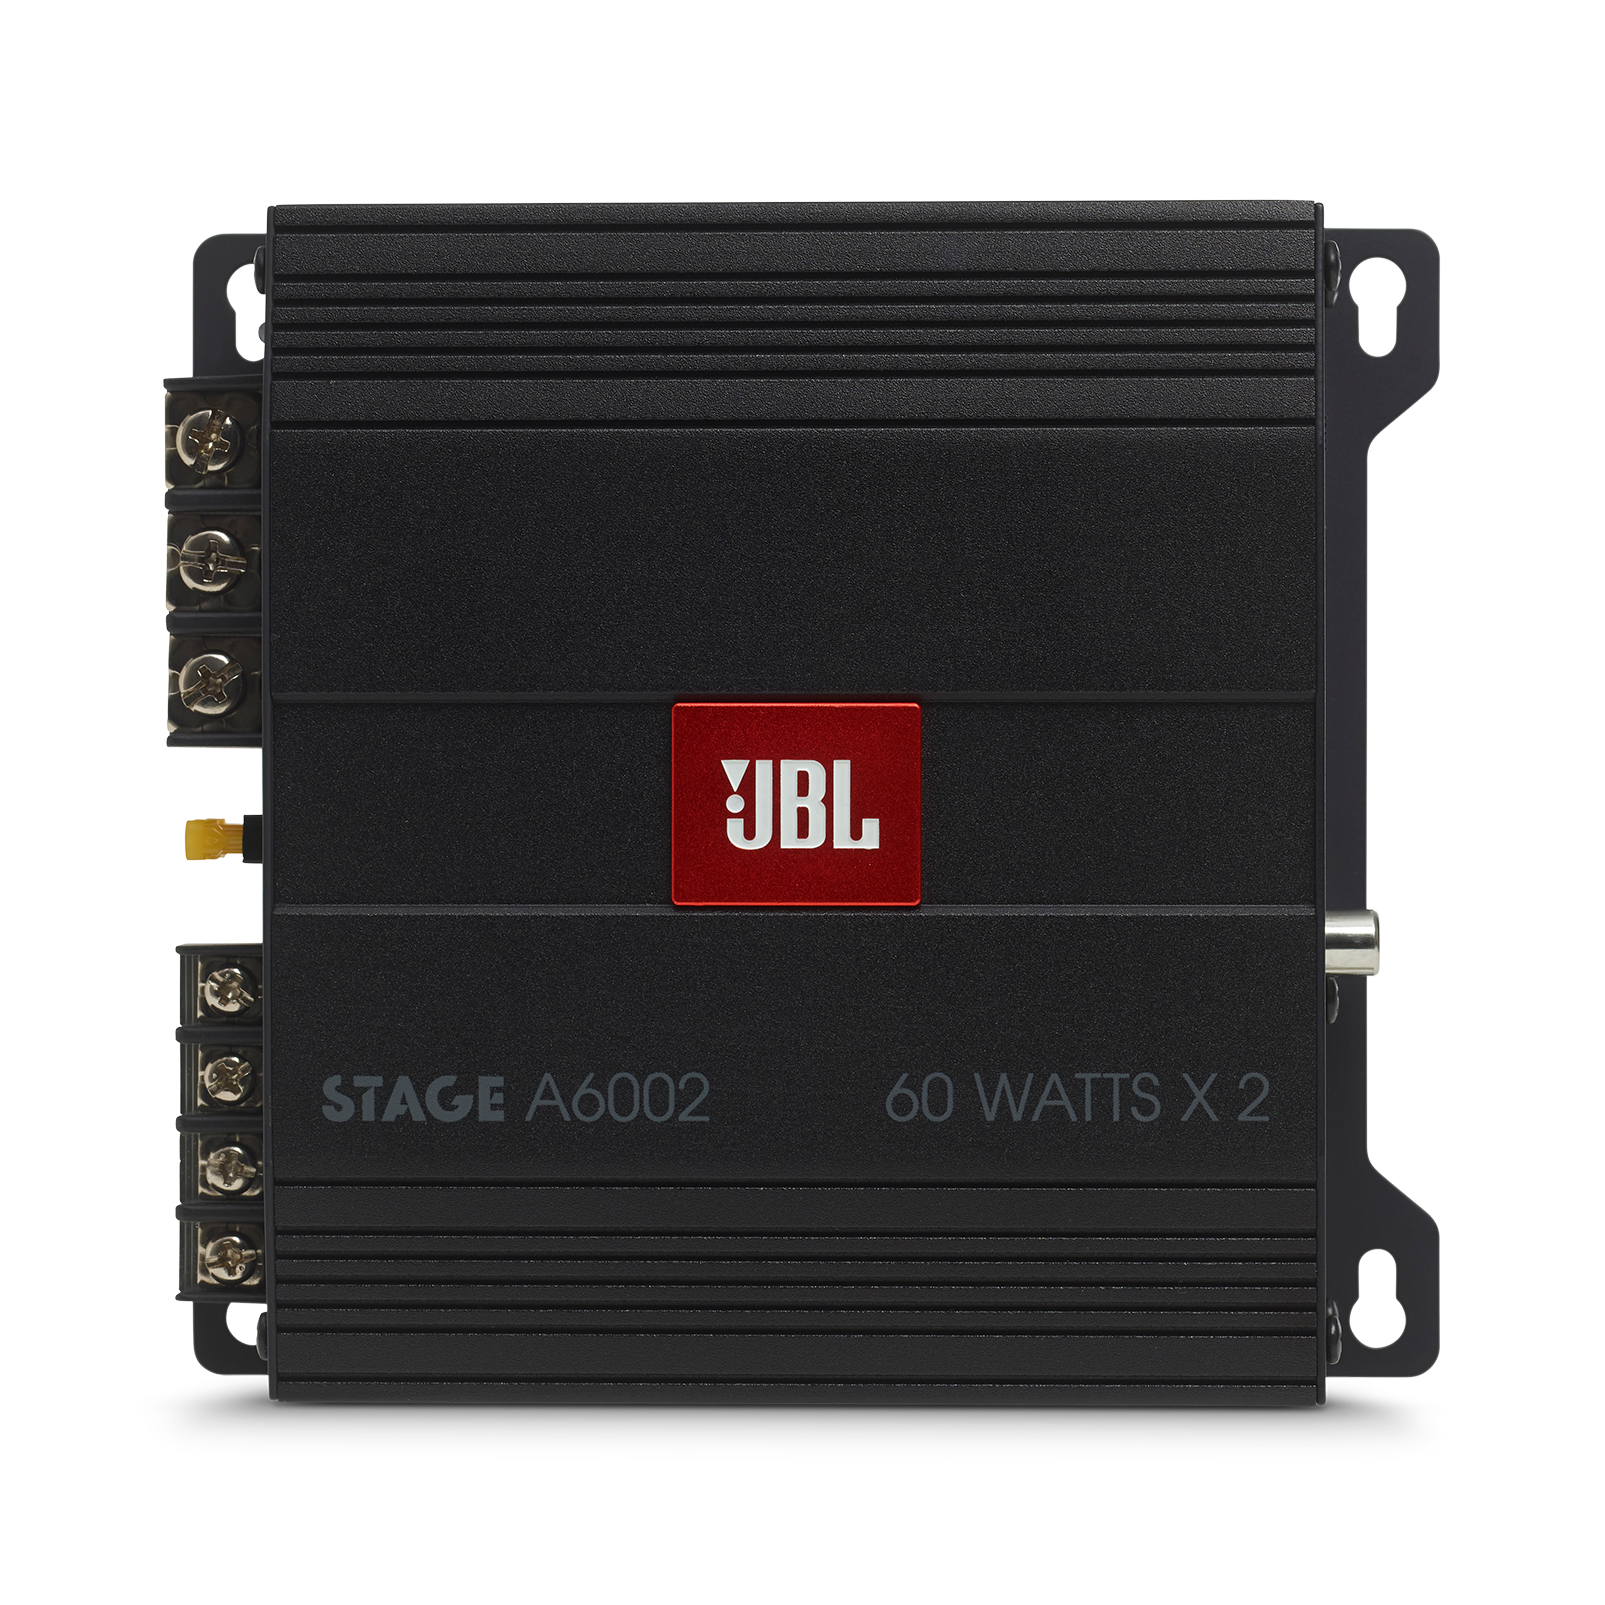 JBL Stage Amplifier A6002 - Black - Class D Car Audio Amplifier - Front